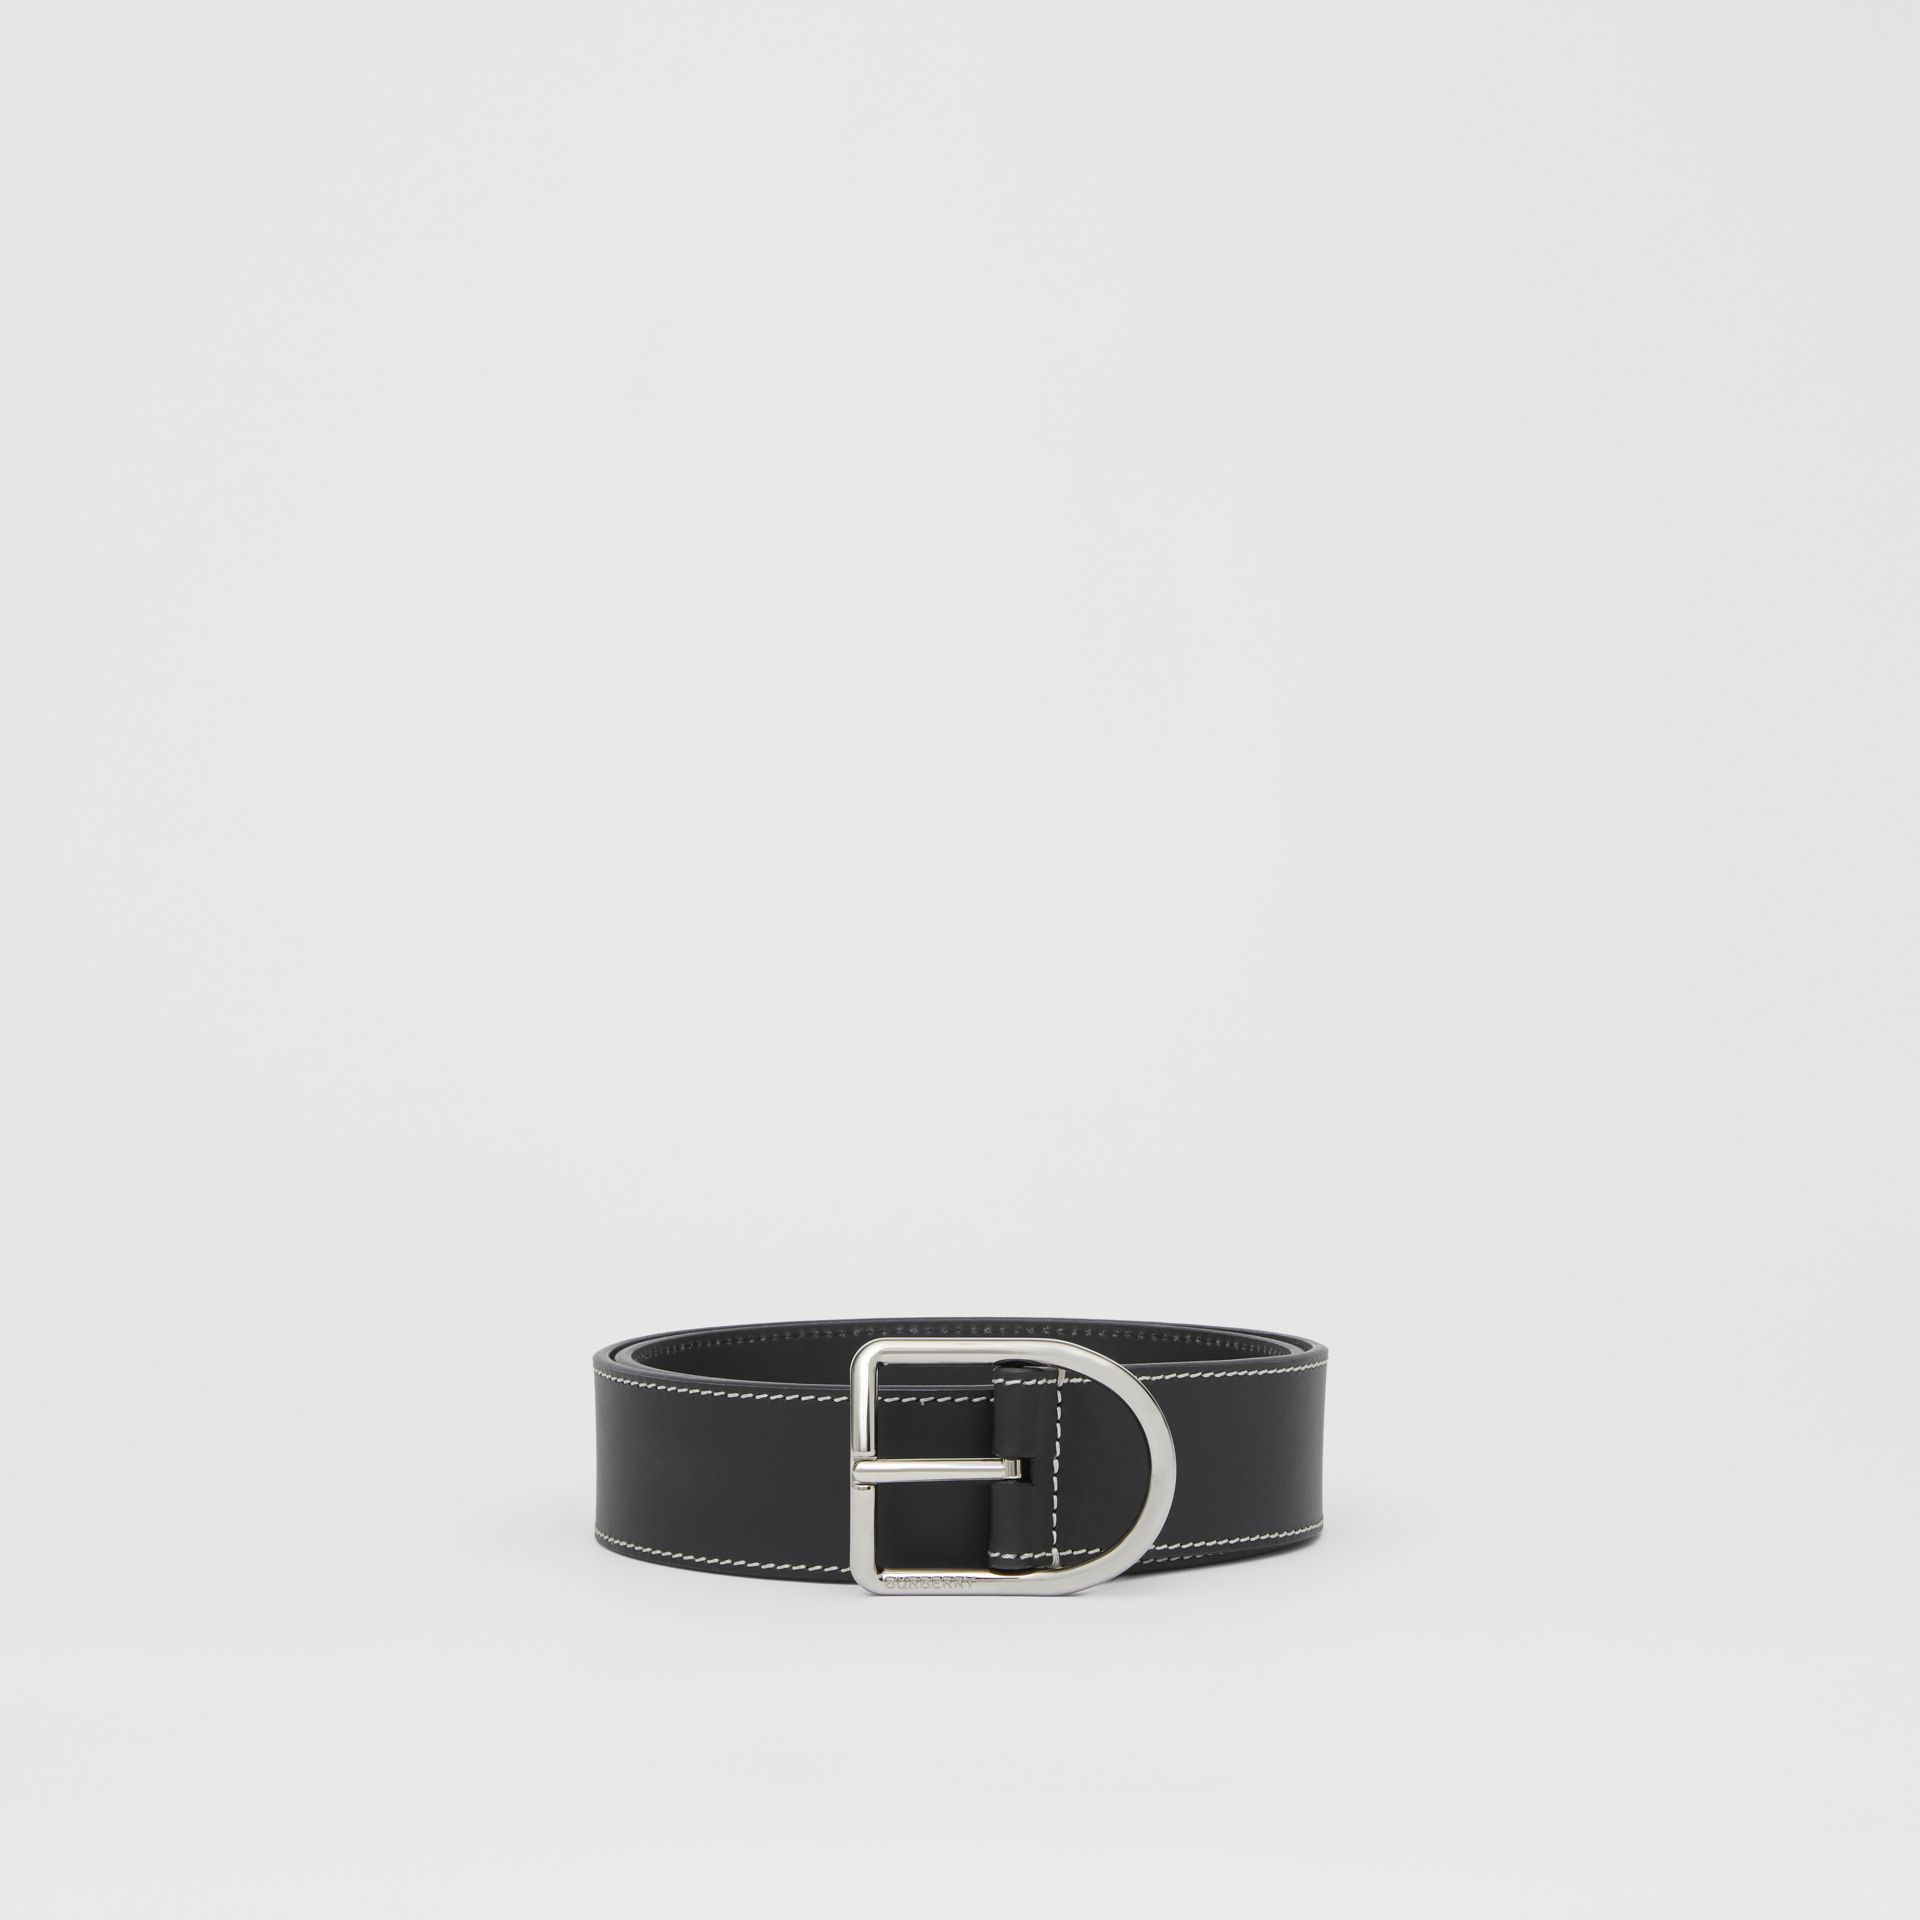 Topstitch Detail Leather Belt in Black - Men | Burberry Hong Kong S.A.R - gallery image 3